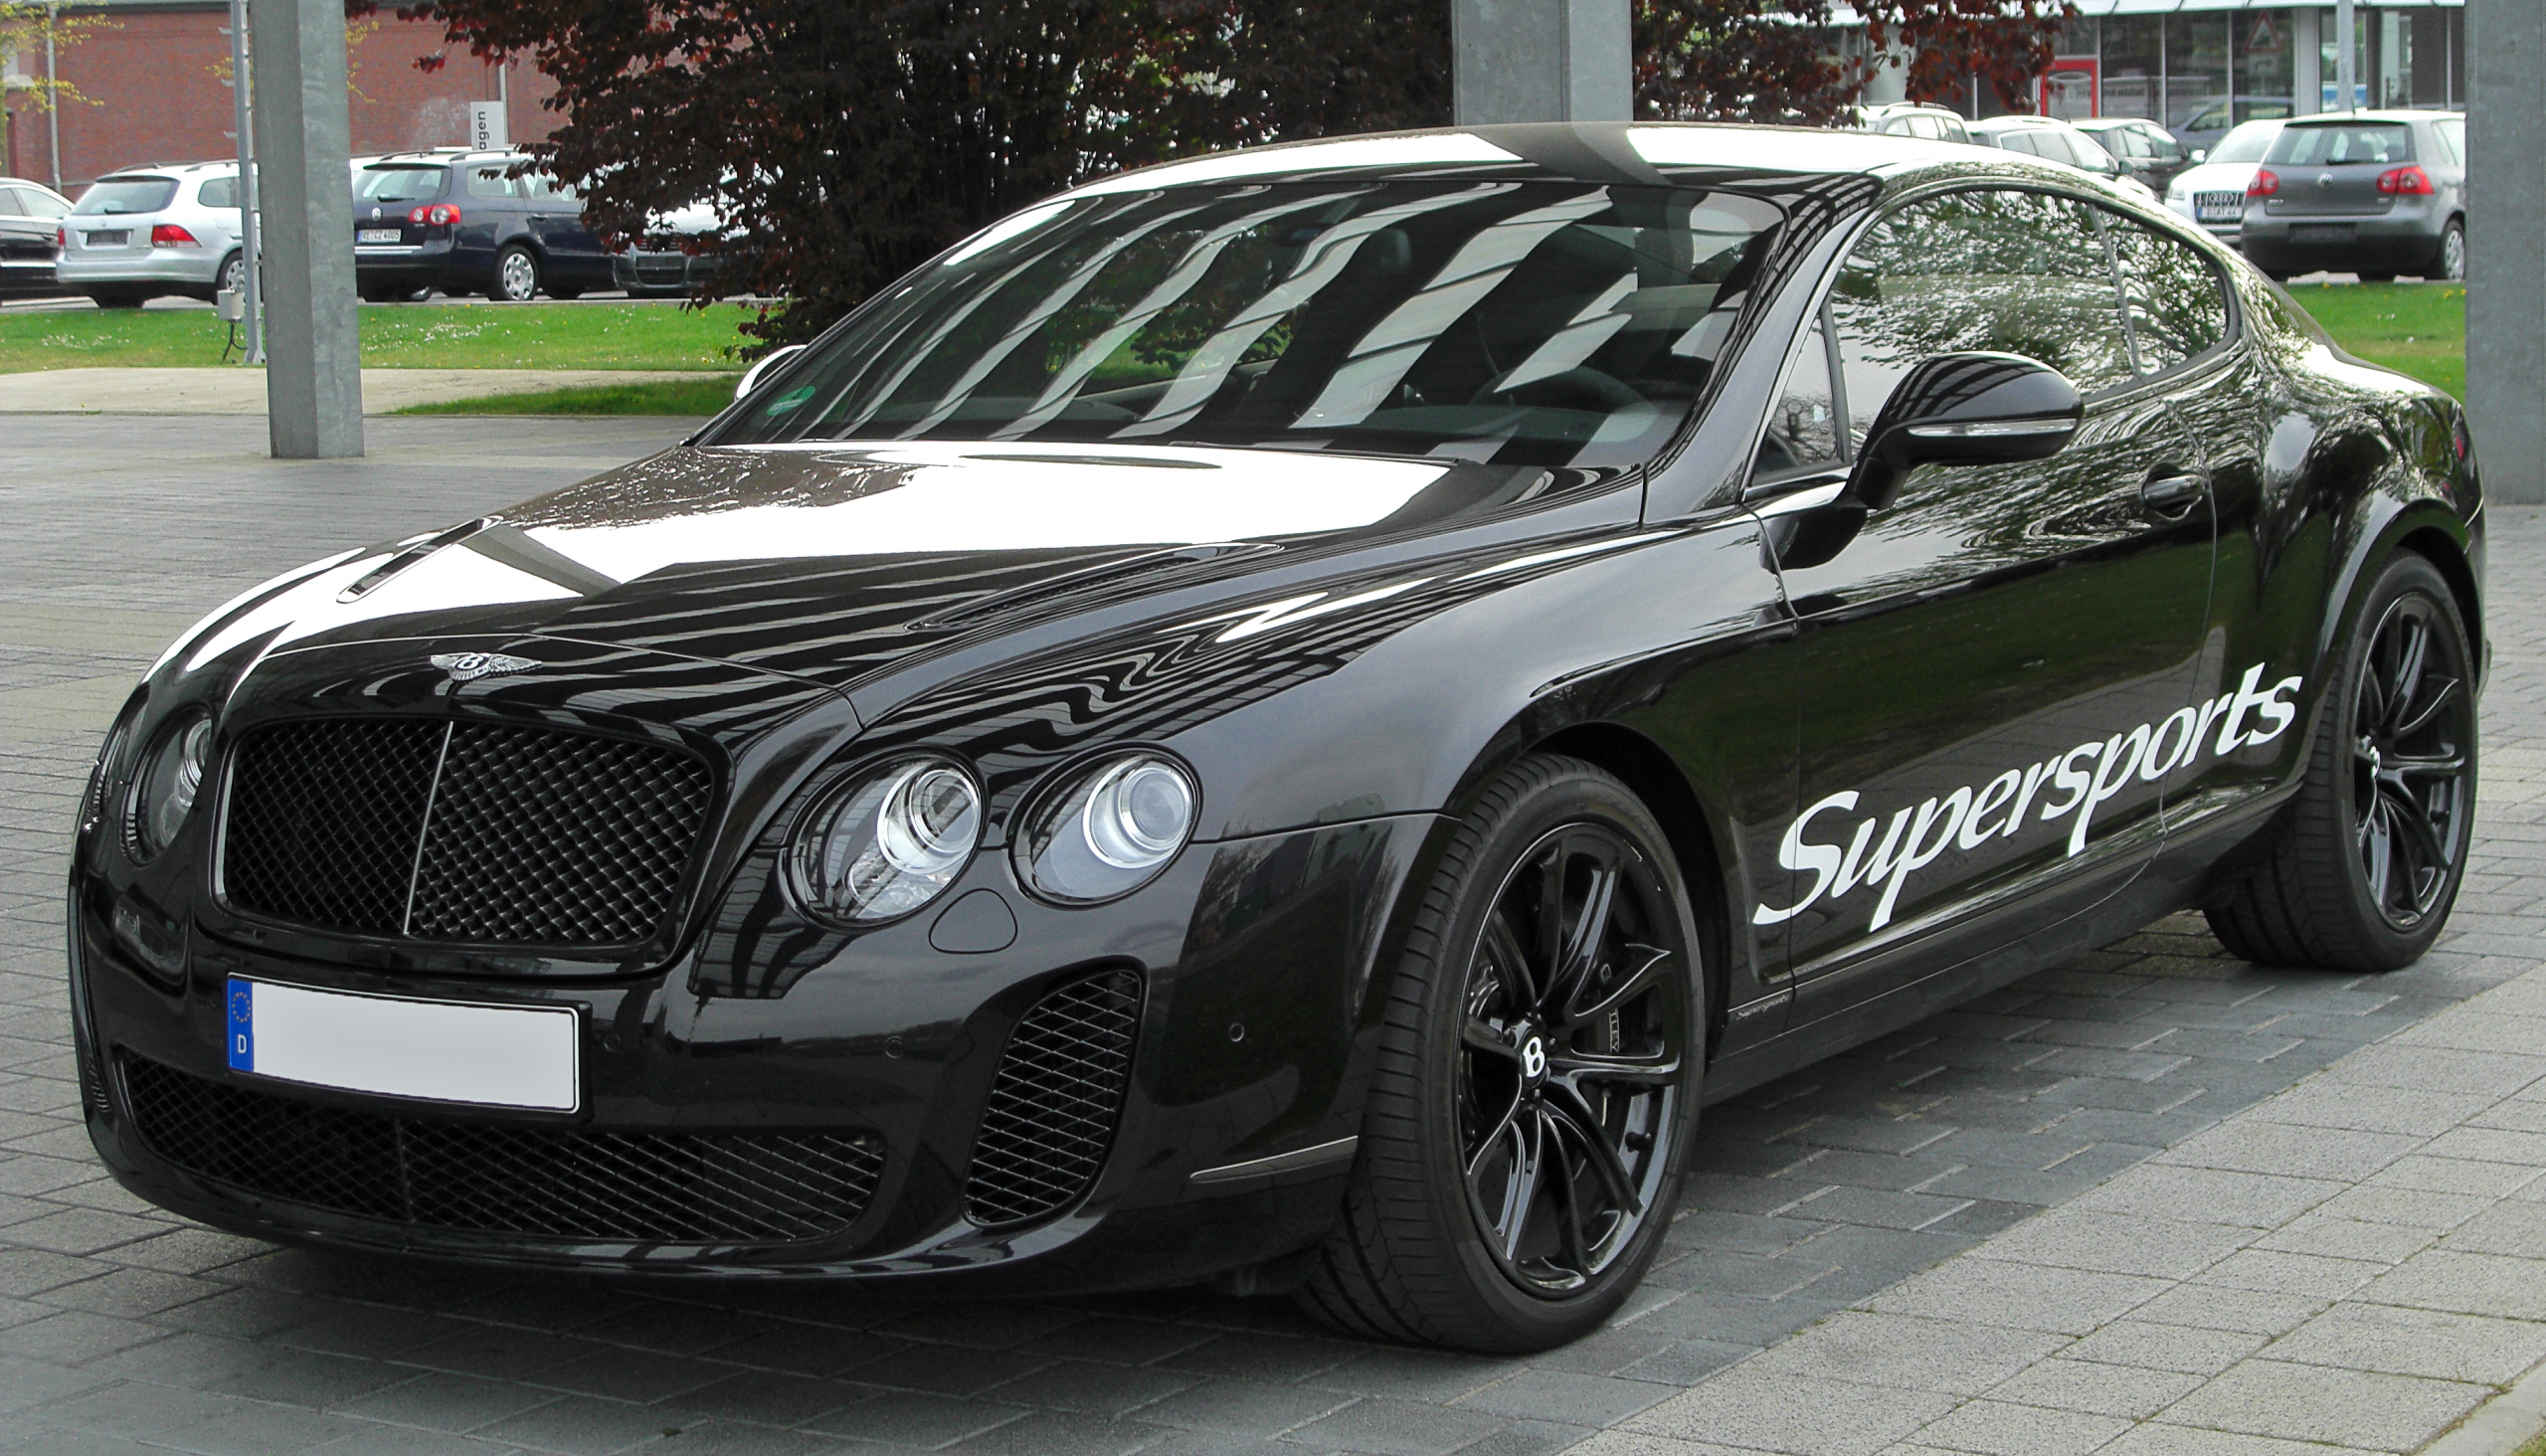 File Bentley Continental Gt Supersports Front 20100425 Jpg Wikimedia Commons